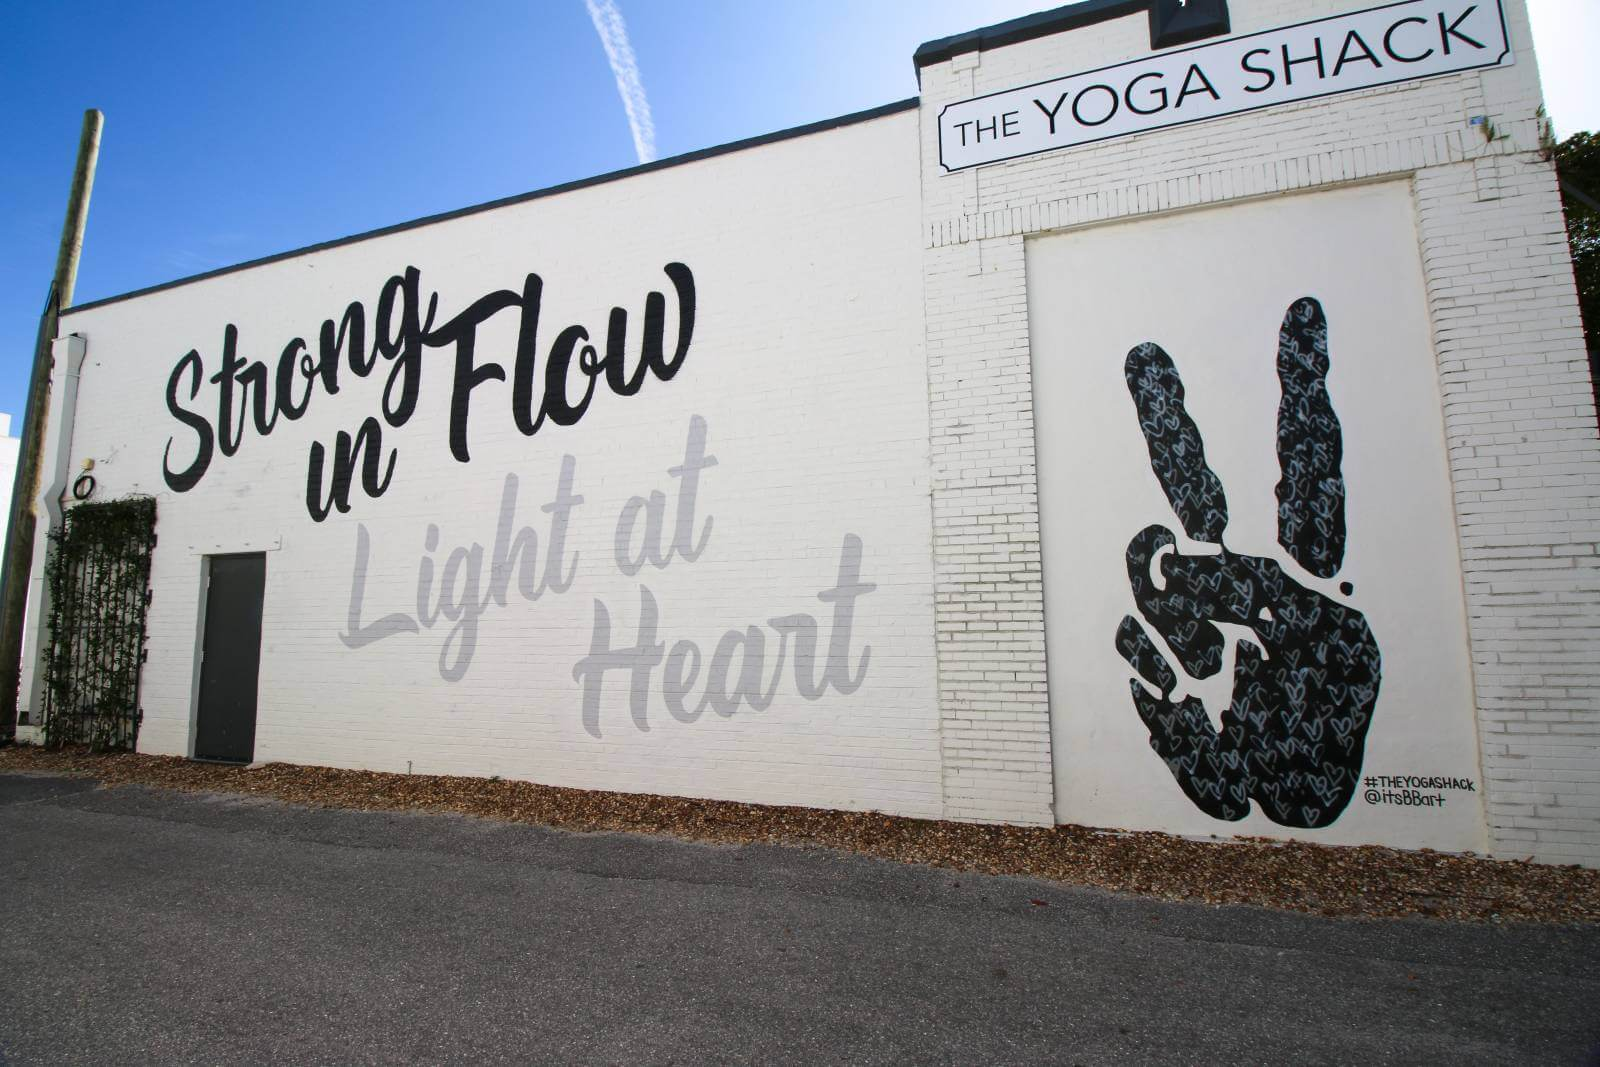 Stong in Flow Light at Heart The Yoga Shack. Sarasota, Florida street art and murals. Photo credit Laurén Ettinger. Must Do Visitor Guides | MustDo.com